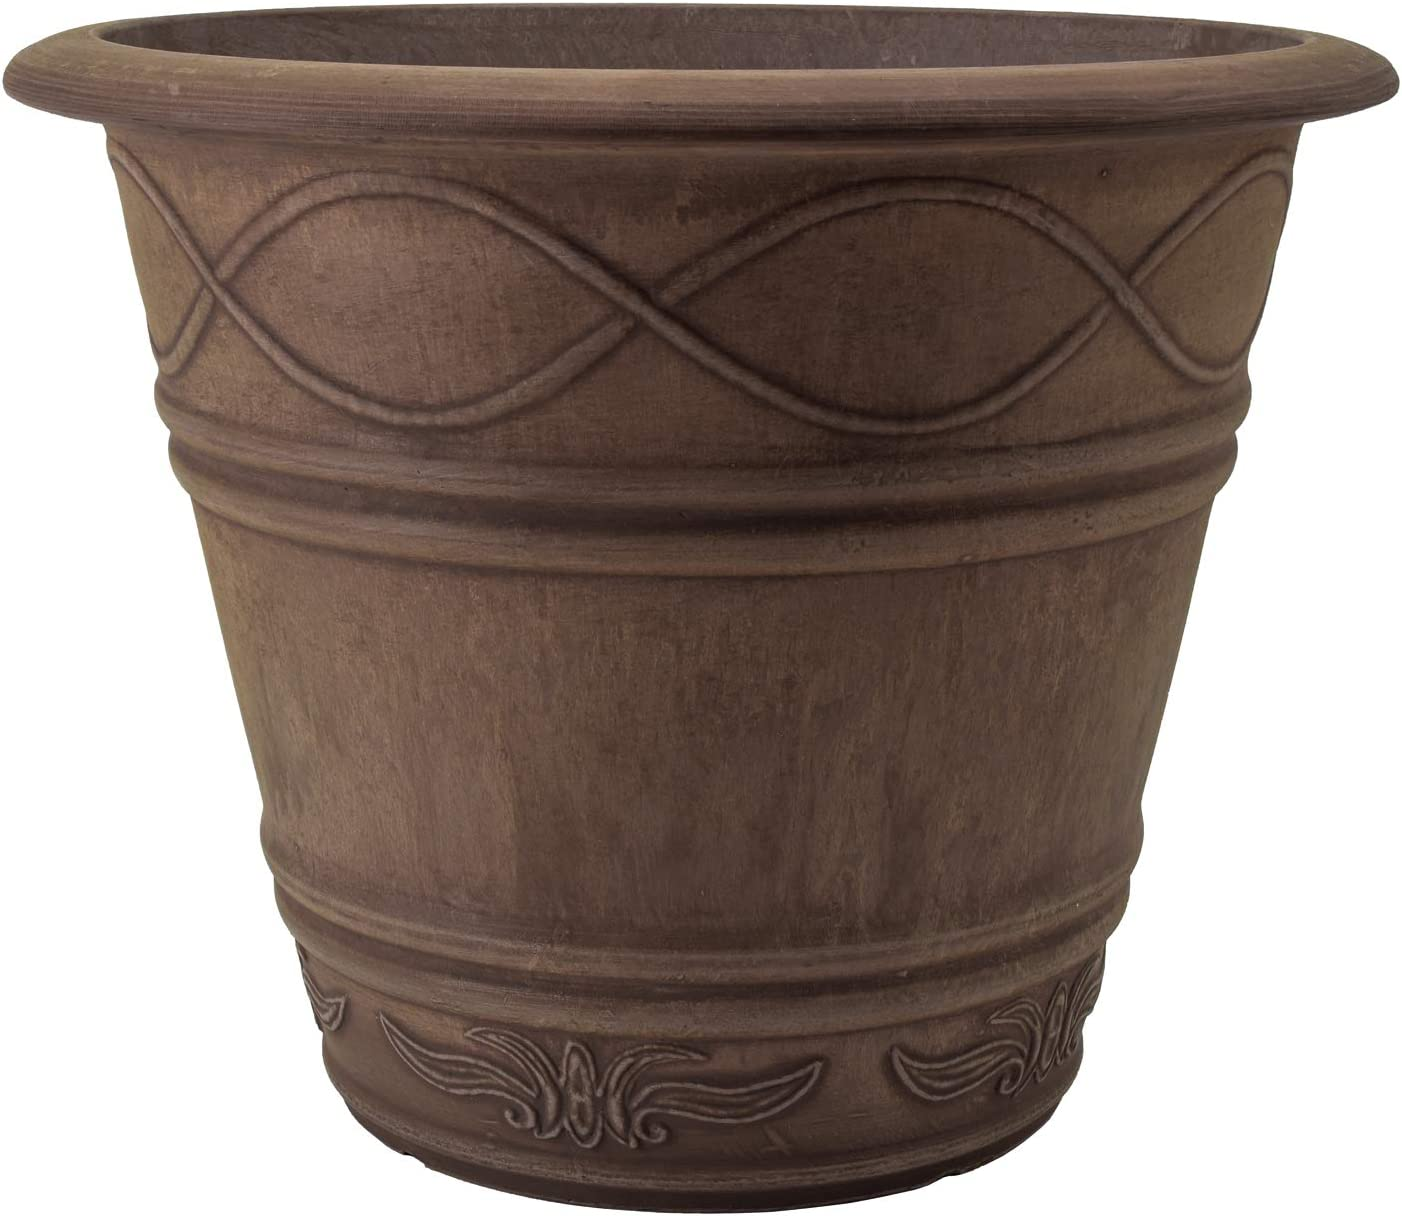 PSW, Chocolate ME36C Western Weave Planter, 14 by 11.5-Inch